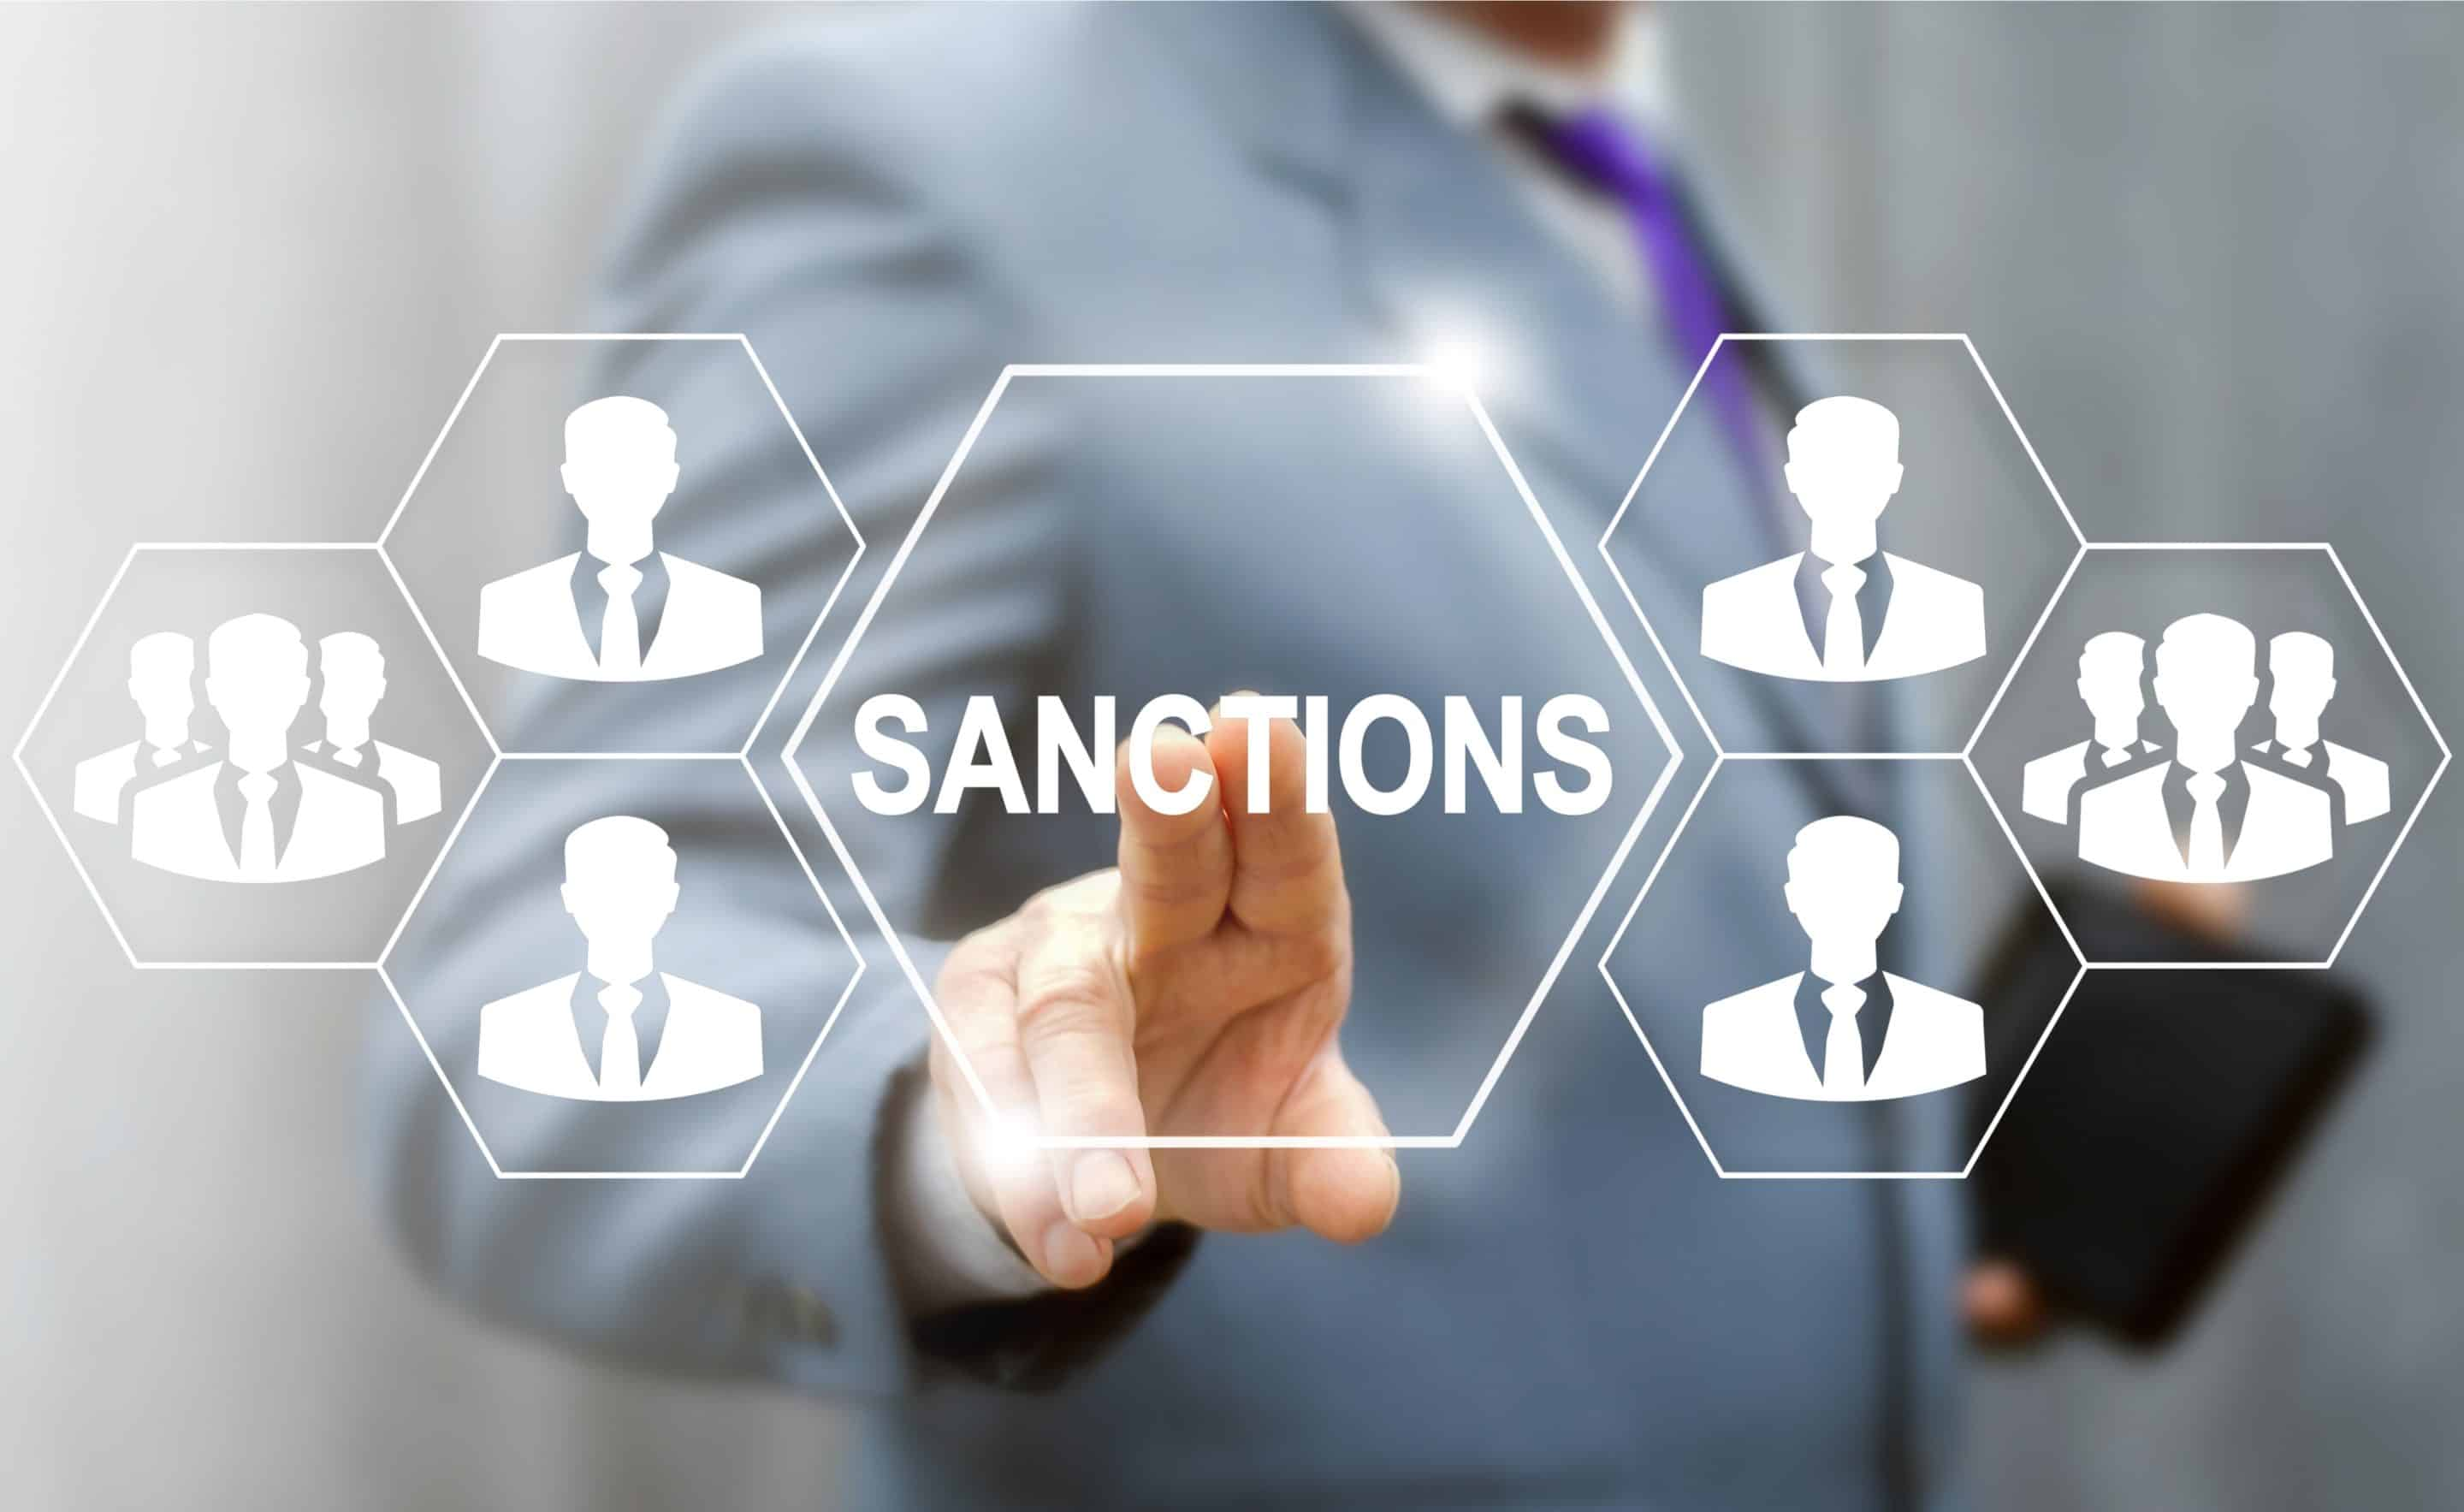 Webinar: Avoiding the bear traps! Managing the industry's sanctions exposure post-Brexit